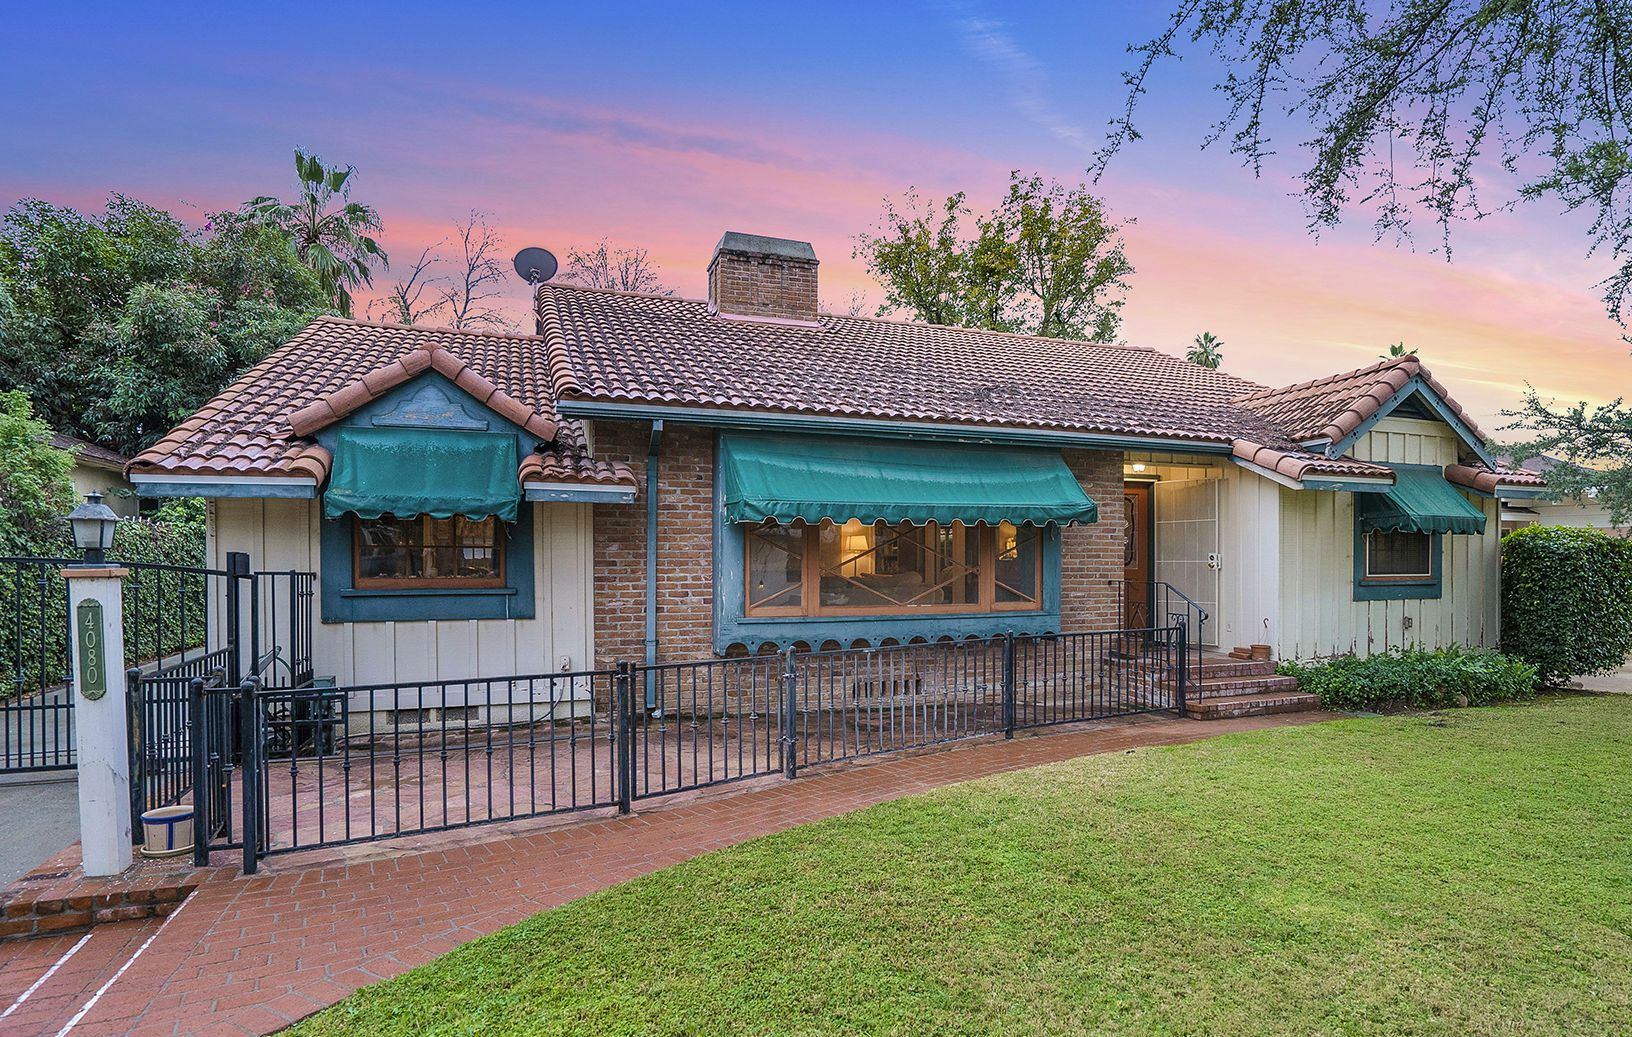 4080 Rice Rd., Riverside CA 92506 listed by THE SISTER TEAM